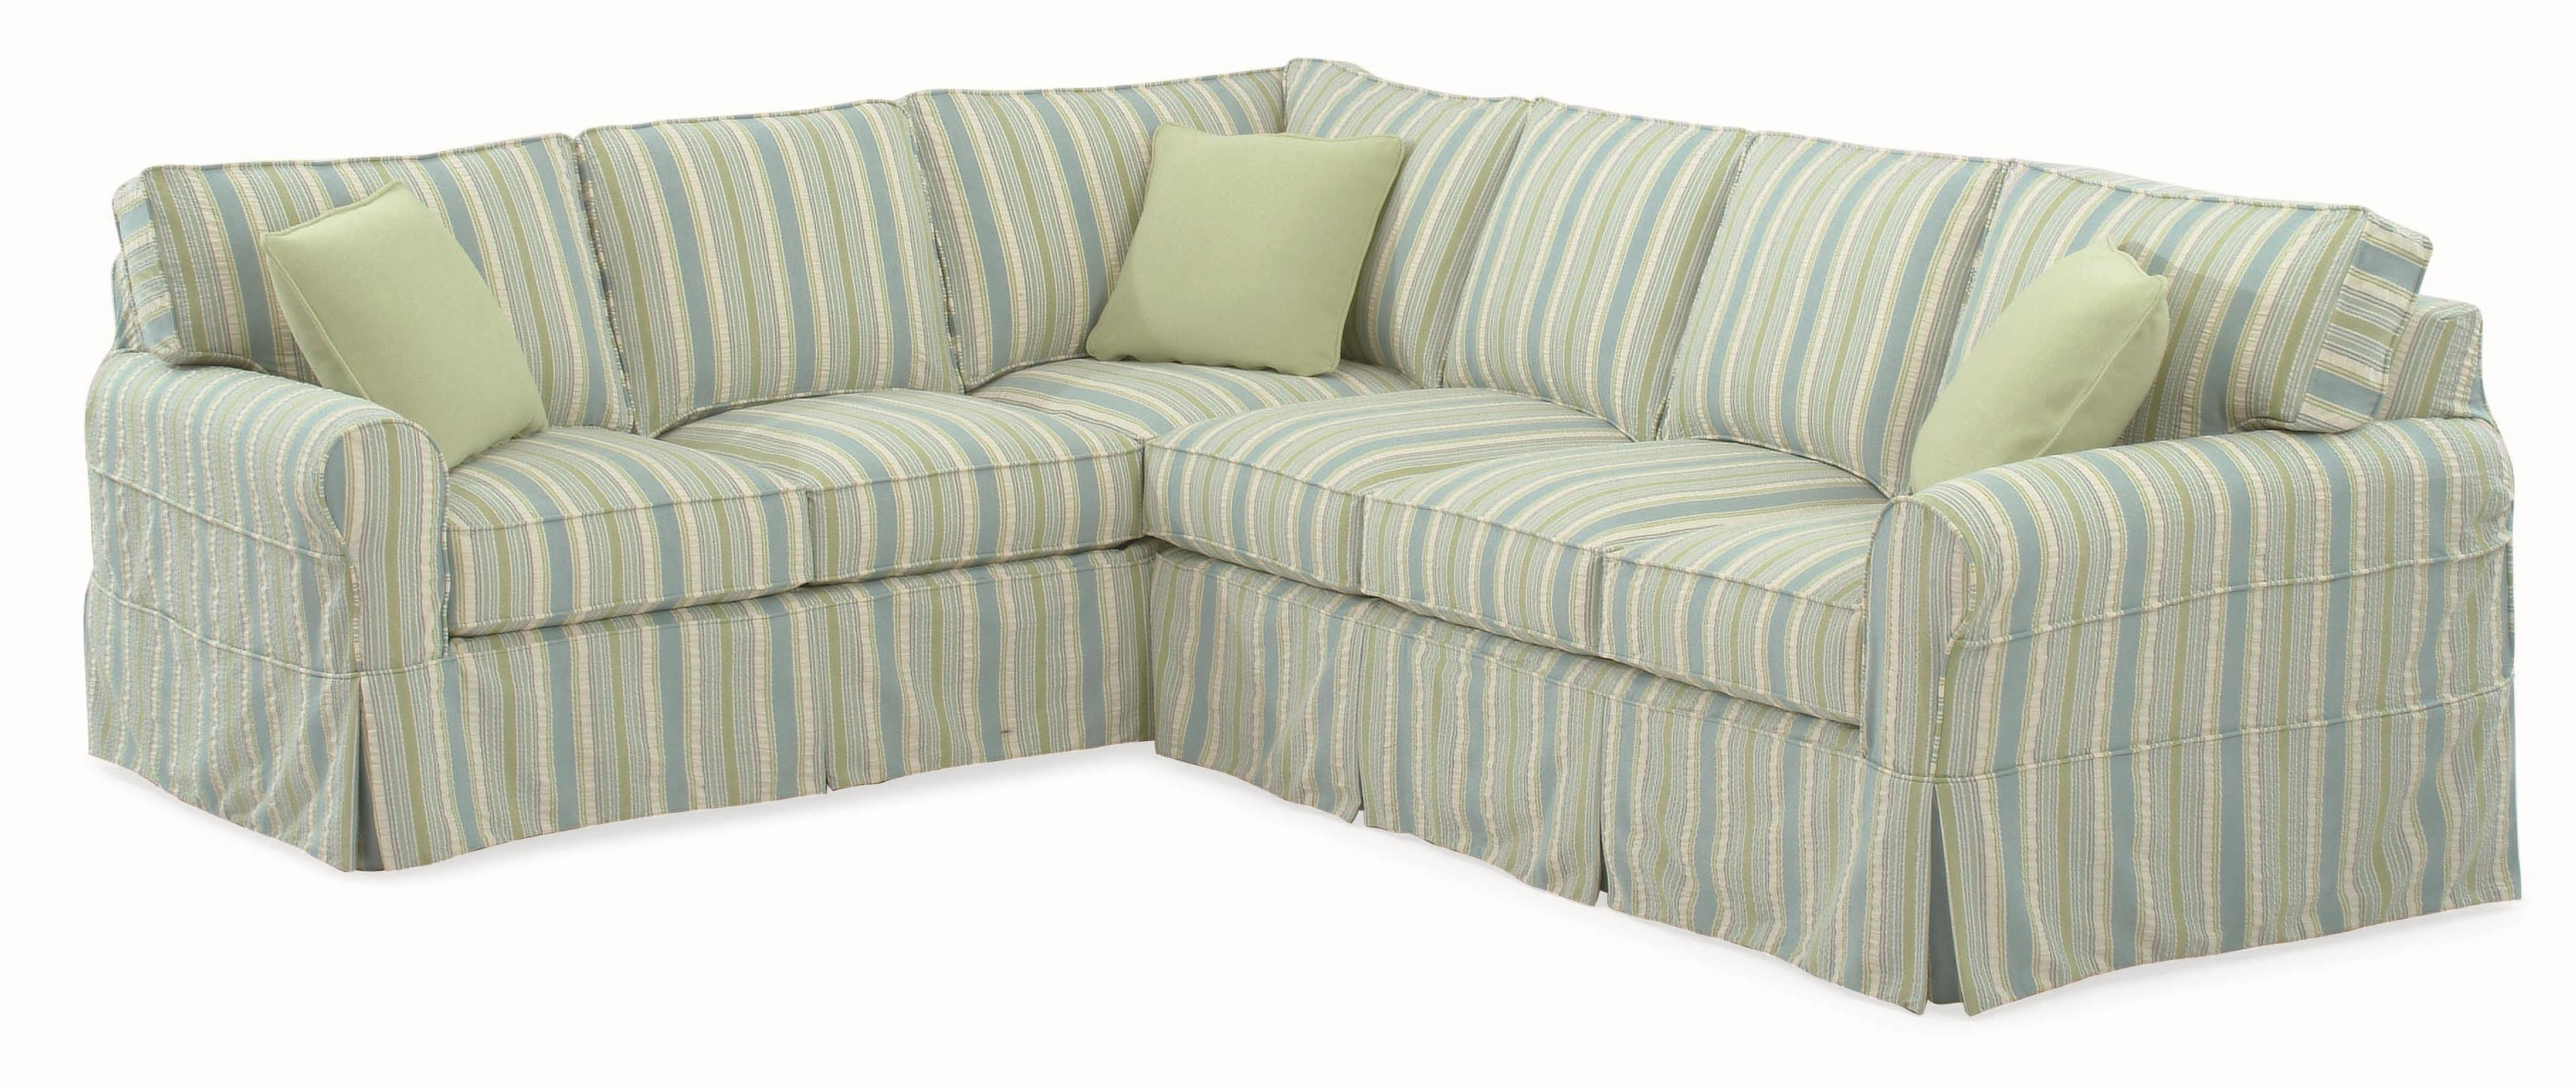 Sectional Sofas In Savannah Ga With Widely Used Braxton Culler 728 Casual Sectional Sofa With Rolled Arms And (View 8 of 20)